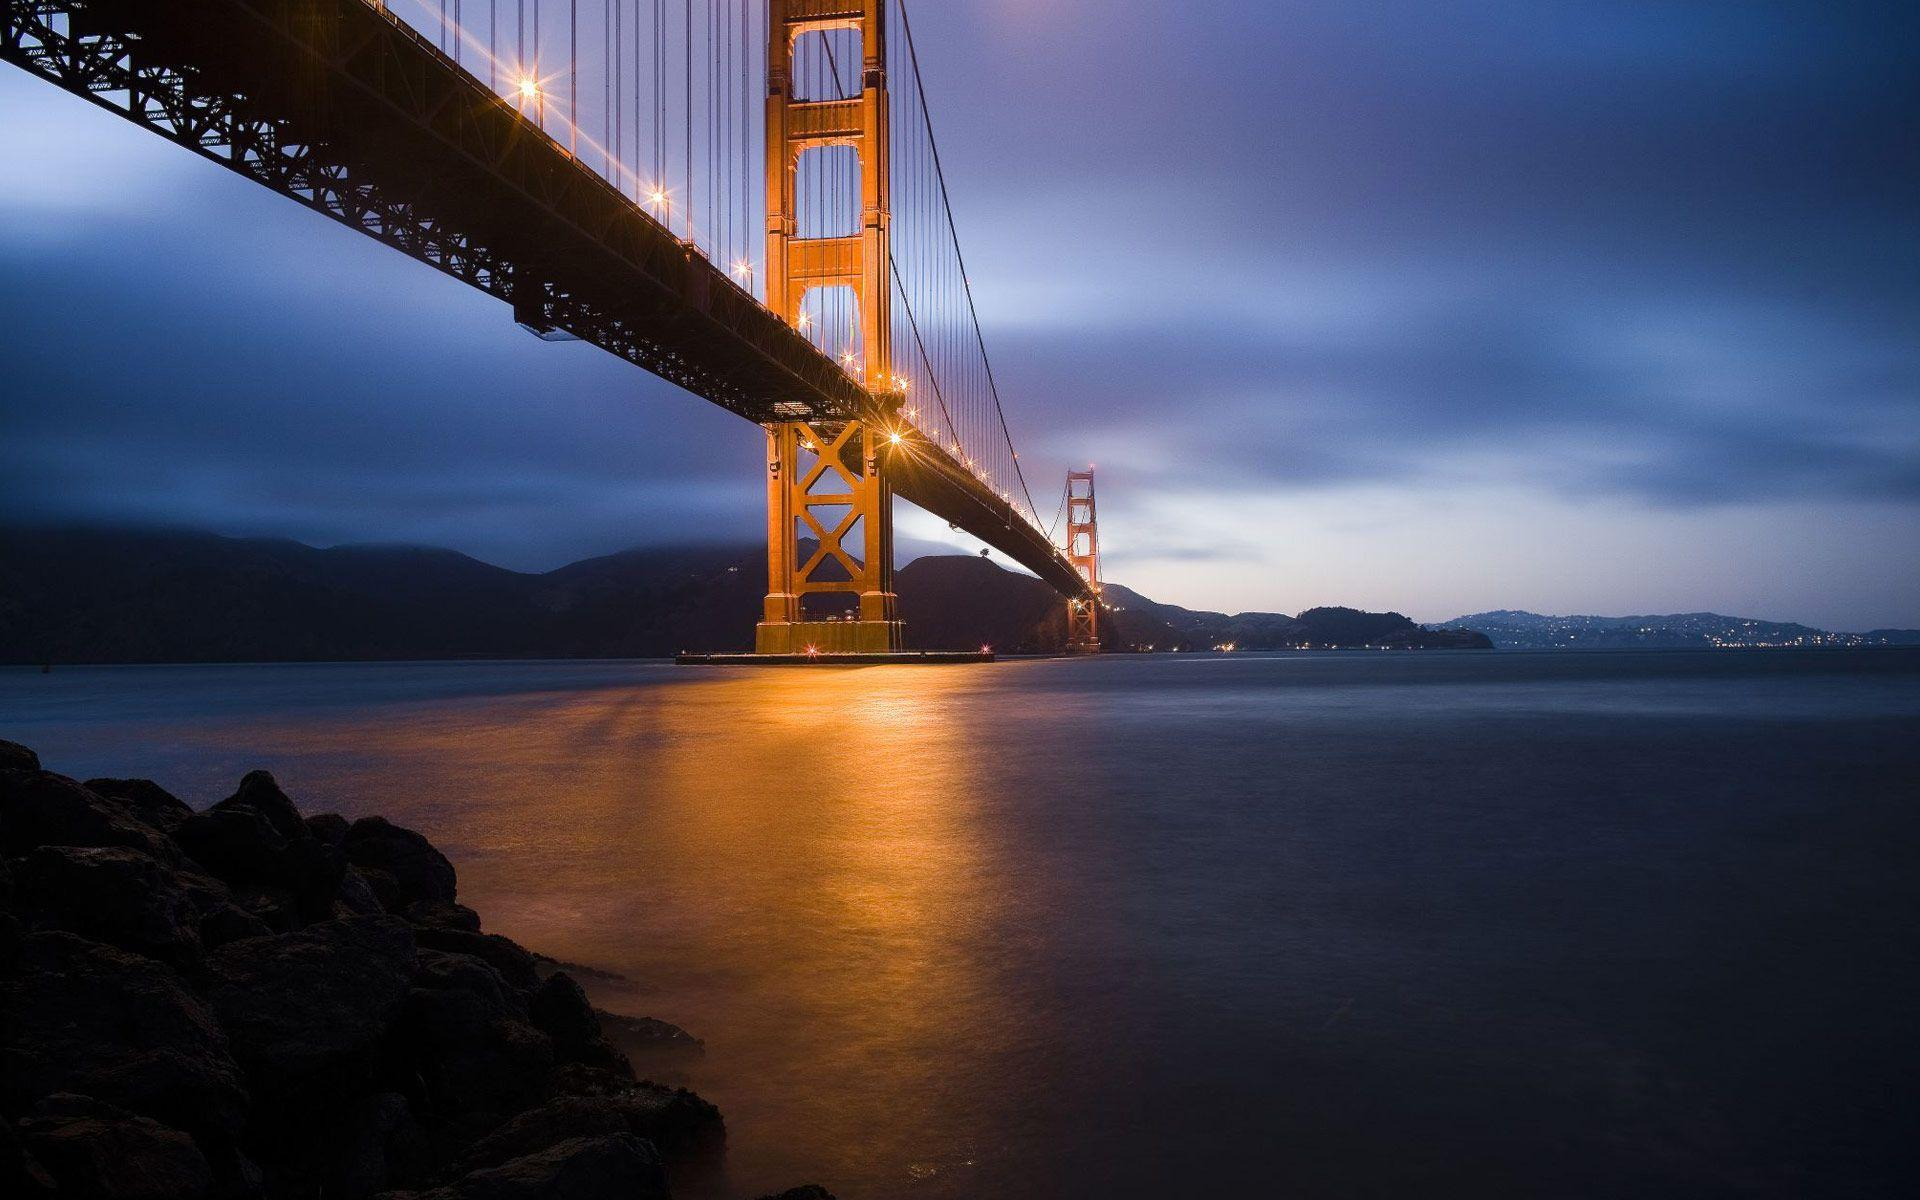 Golden Gate Bridge San Fransisco Wallpapers | HD Wallpapers